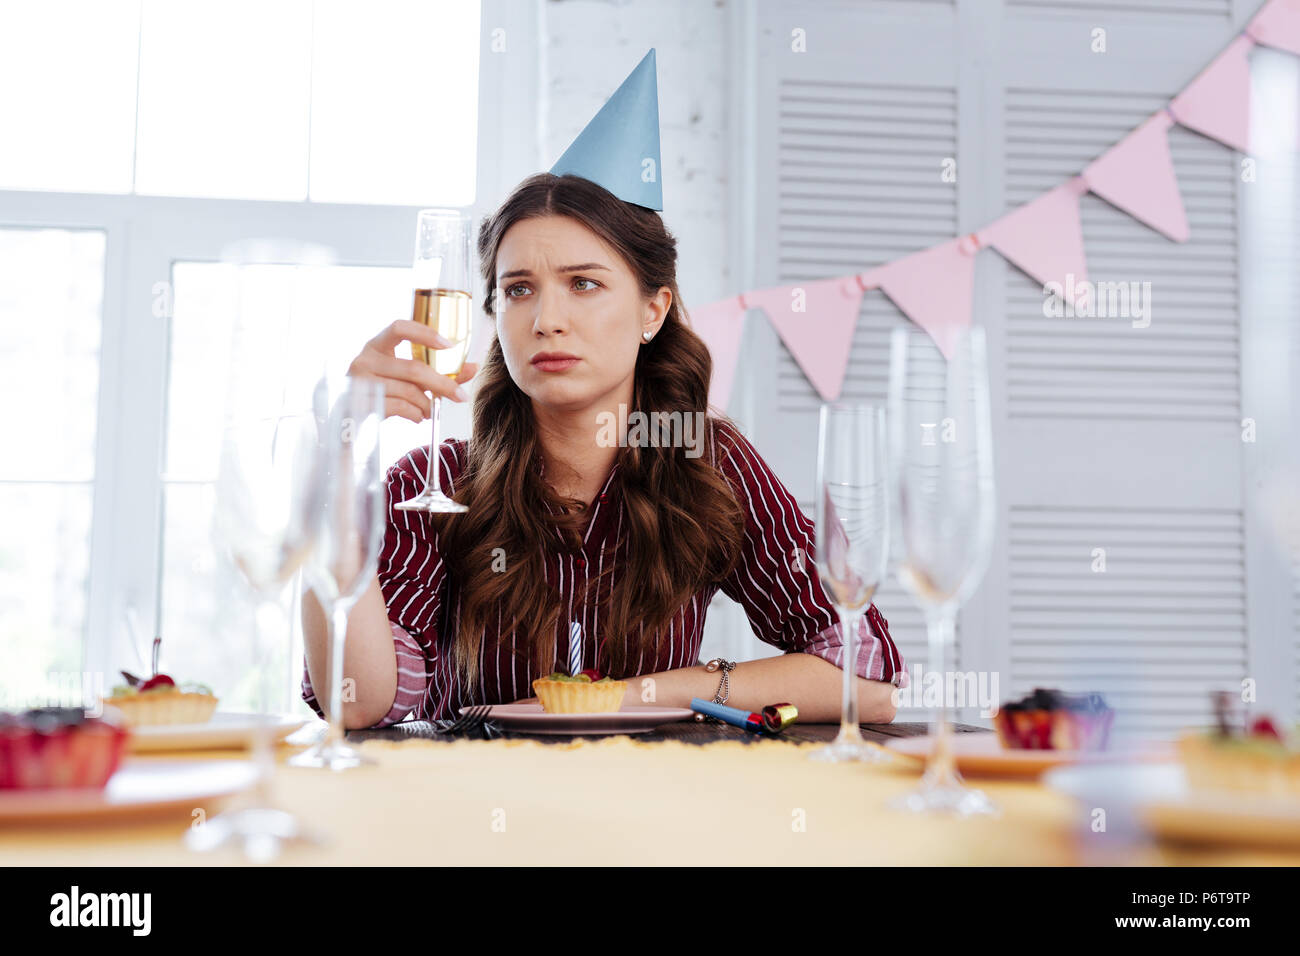 Femme sentiment pessimiste at Birthday party Photo Stock